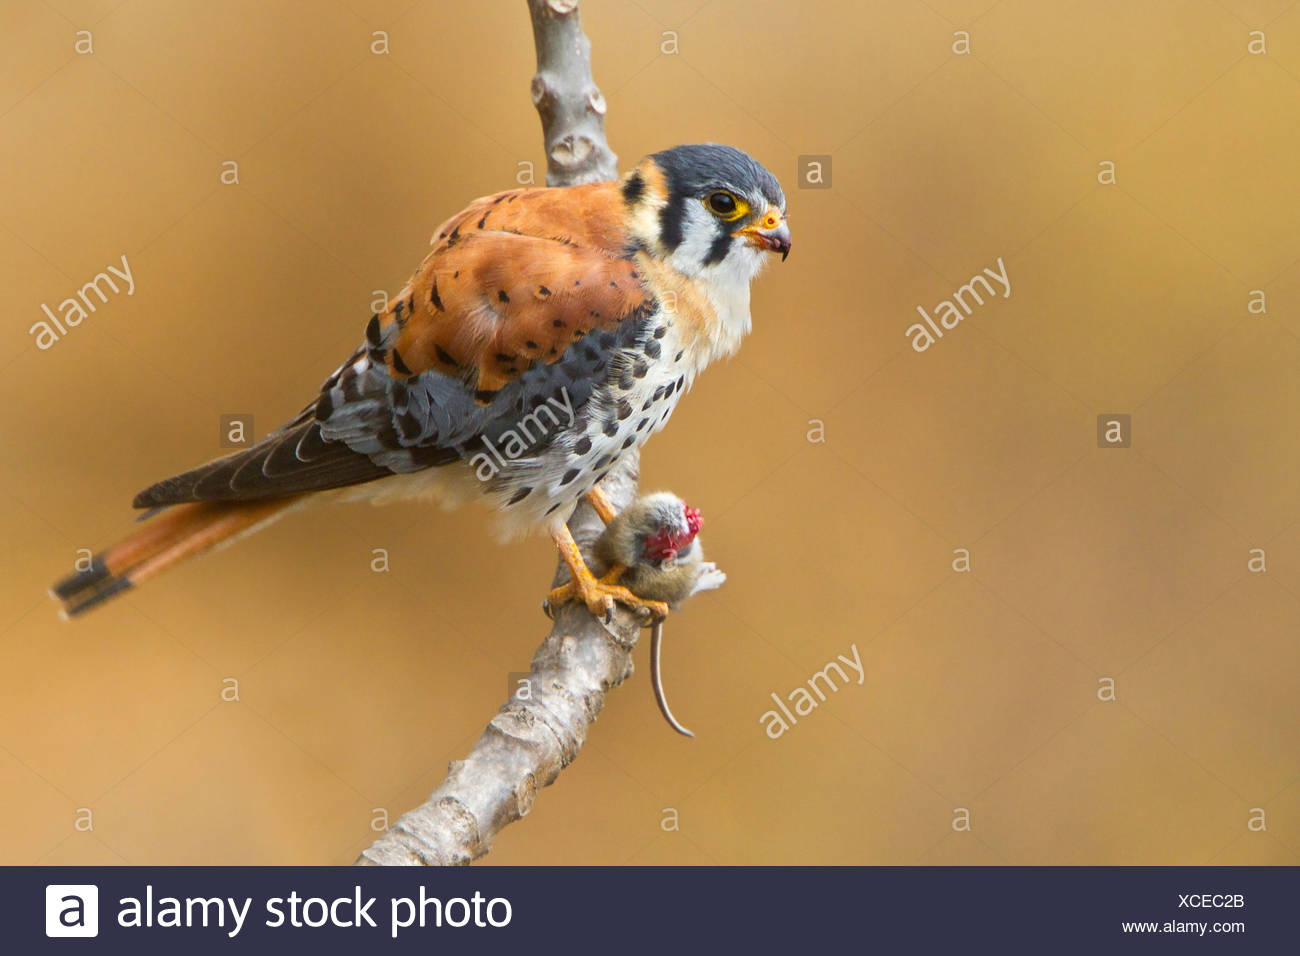 American Kestrel (Falco sparverius) perched on a branch in Peru. - Stock Image